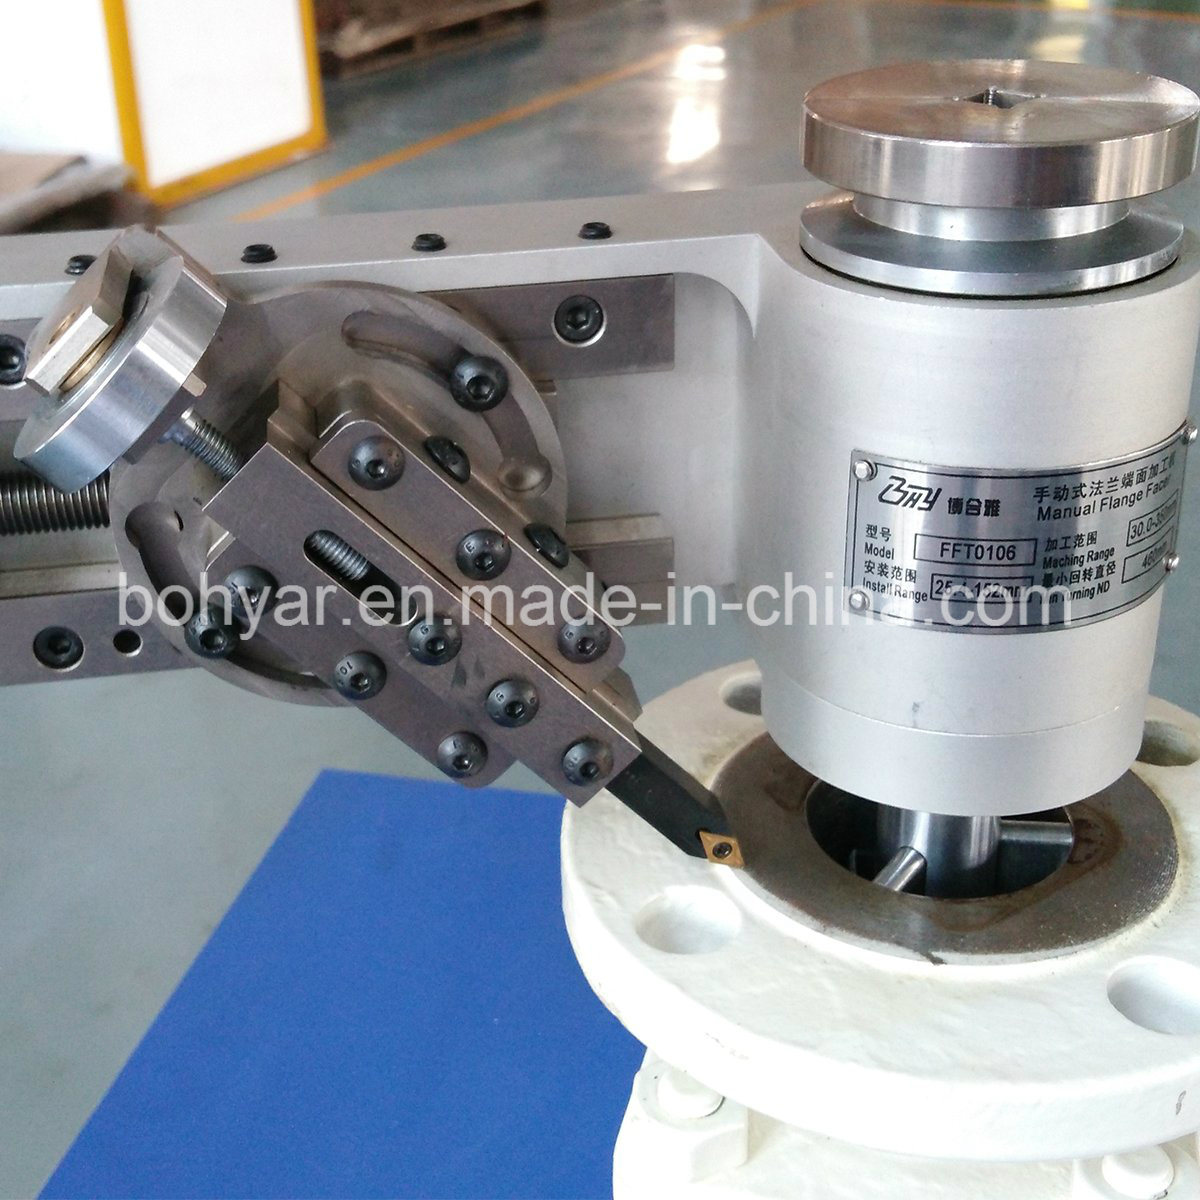 Manual Flange Facing Machine (FFT106)